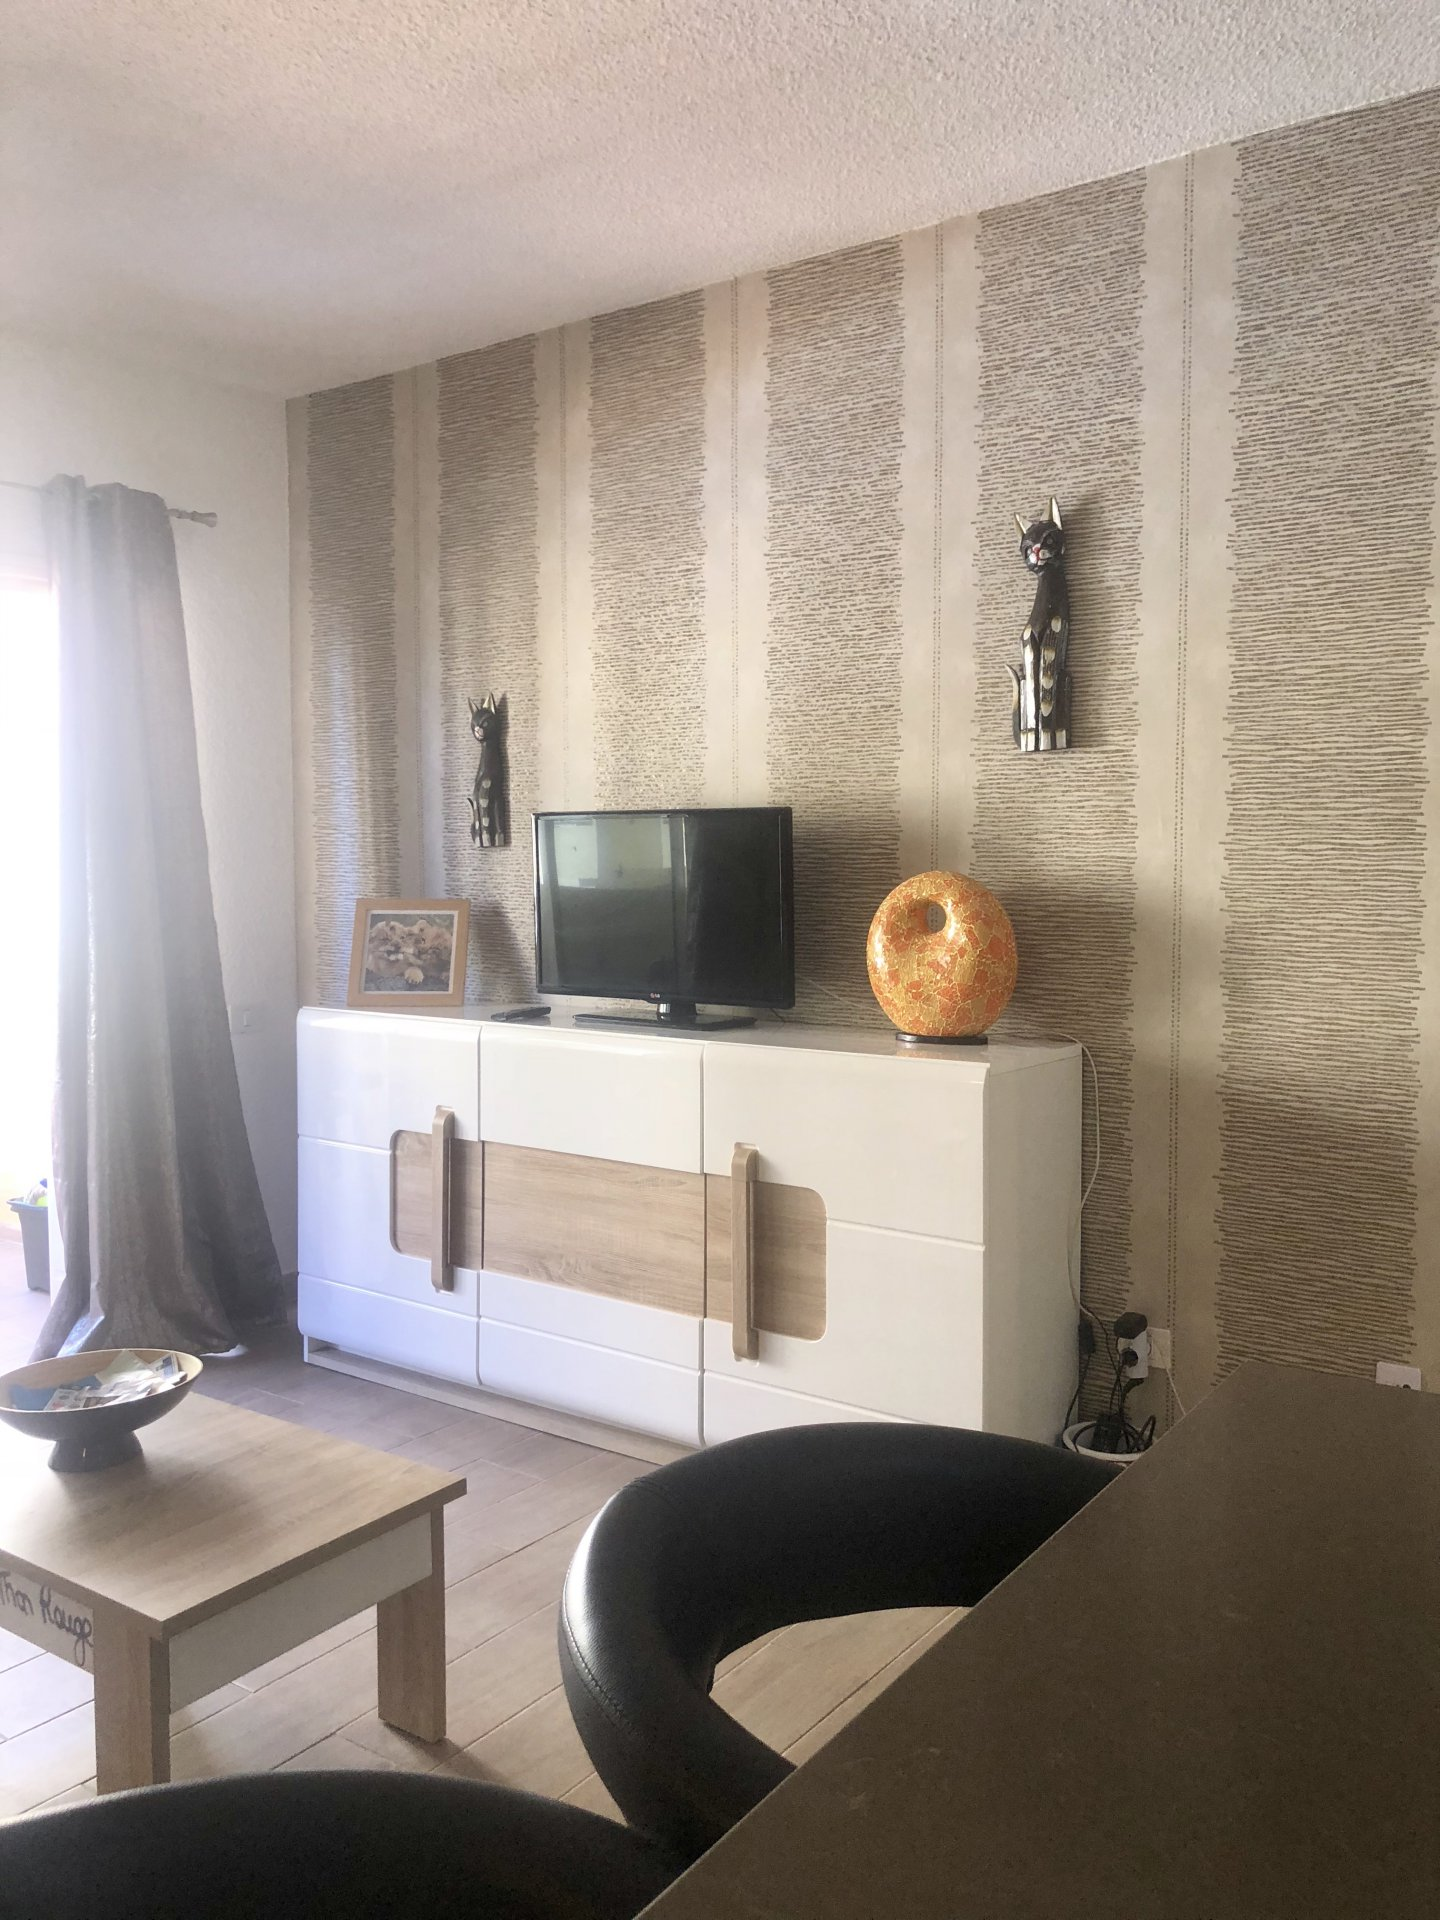 One bedroom apartment in Los Cristianos